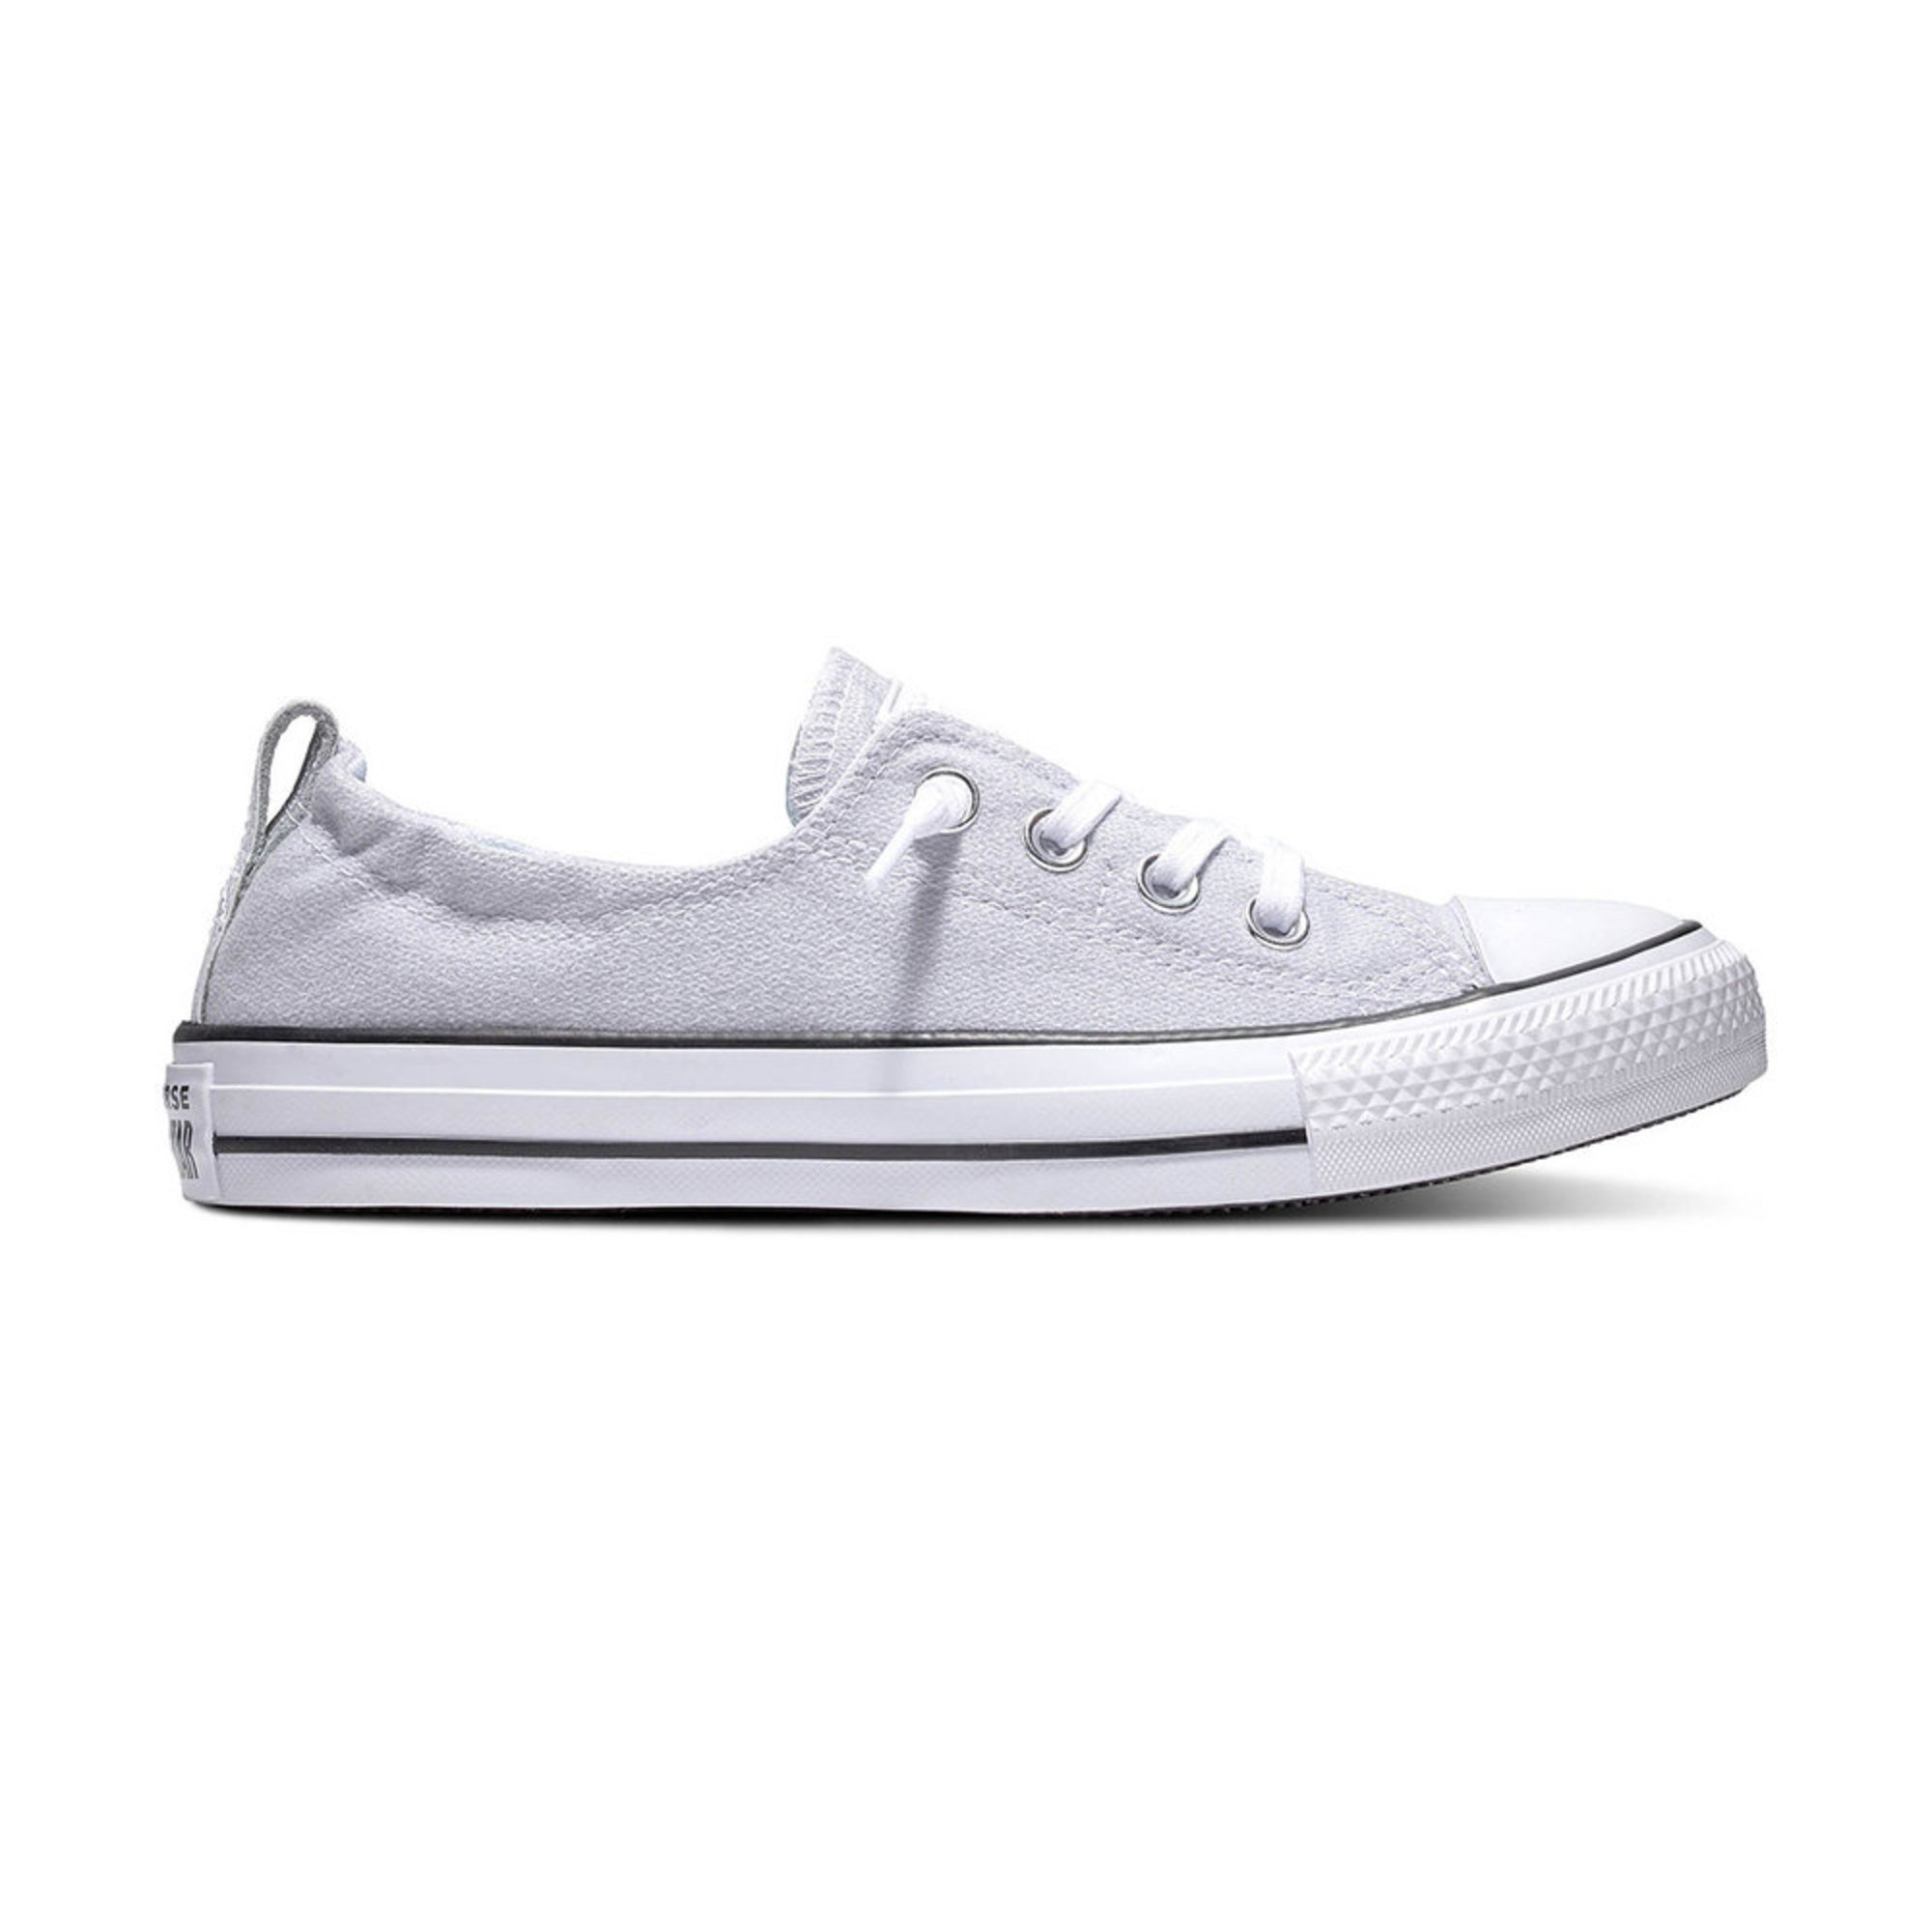 79aae4f163b Converse. Converse Women s Chuck Taylor All Star Shoreline Slip On